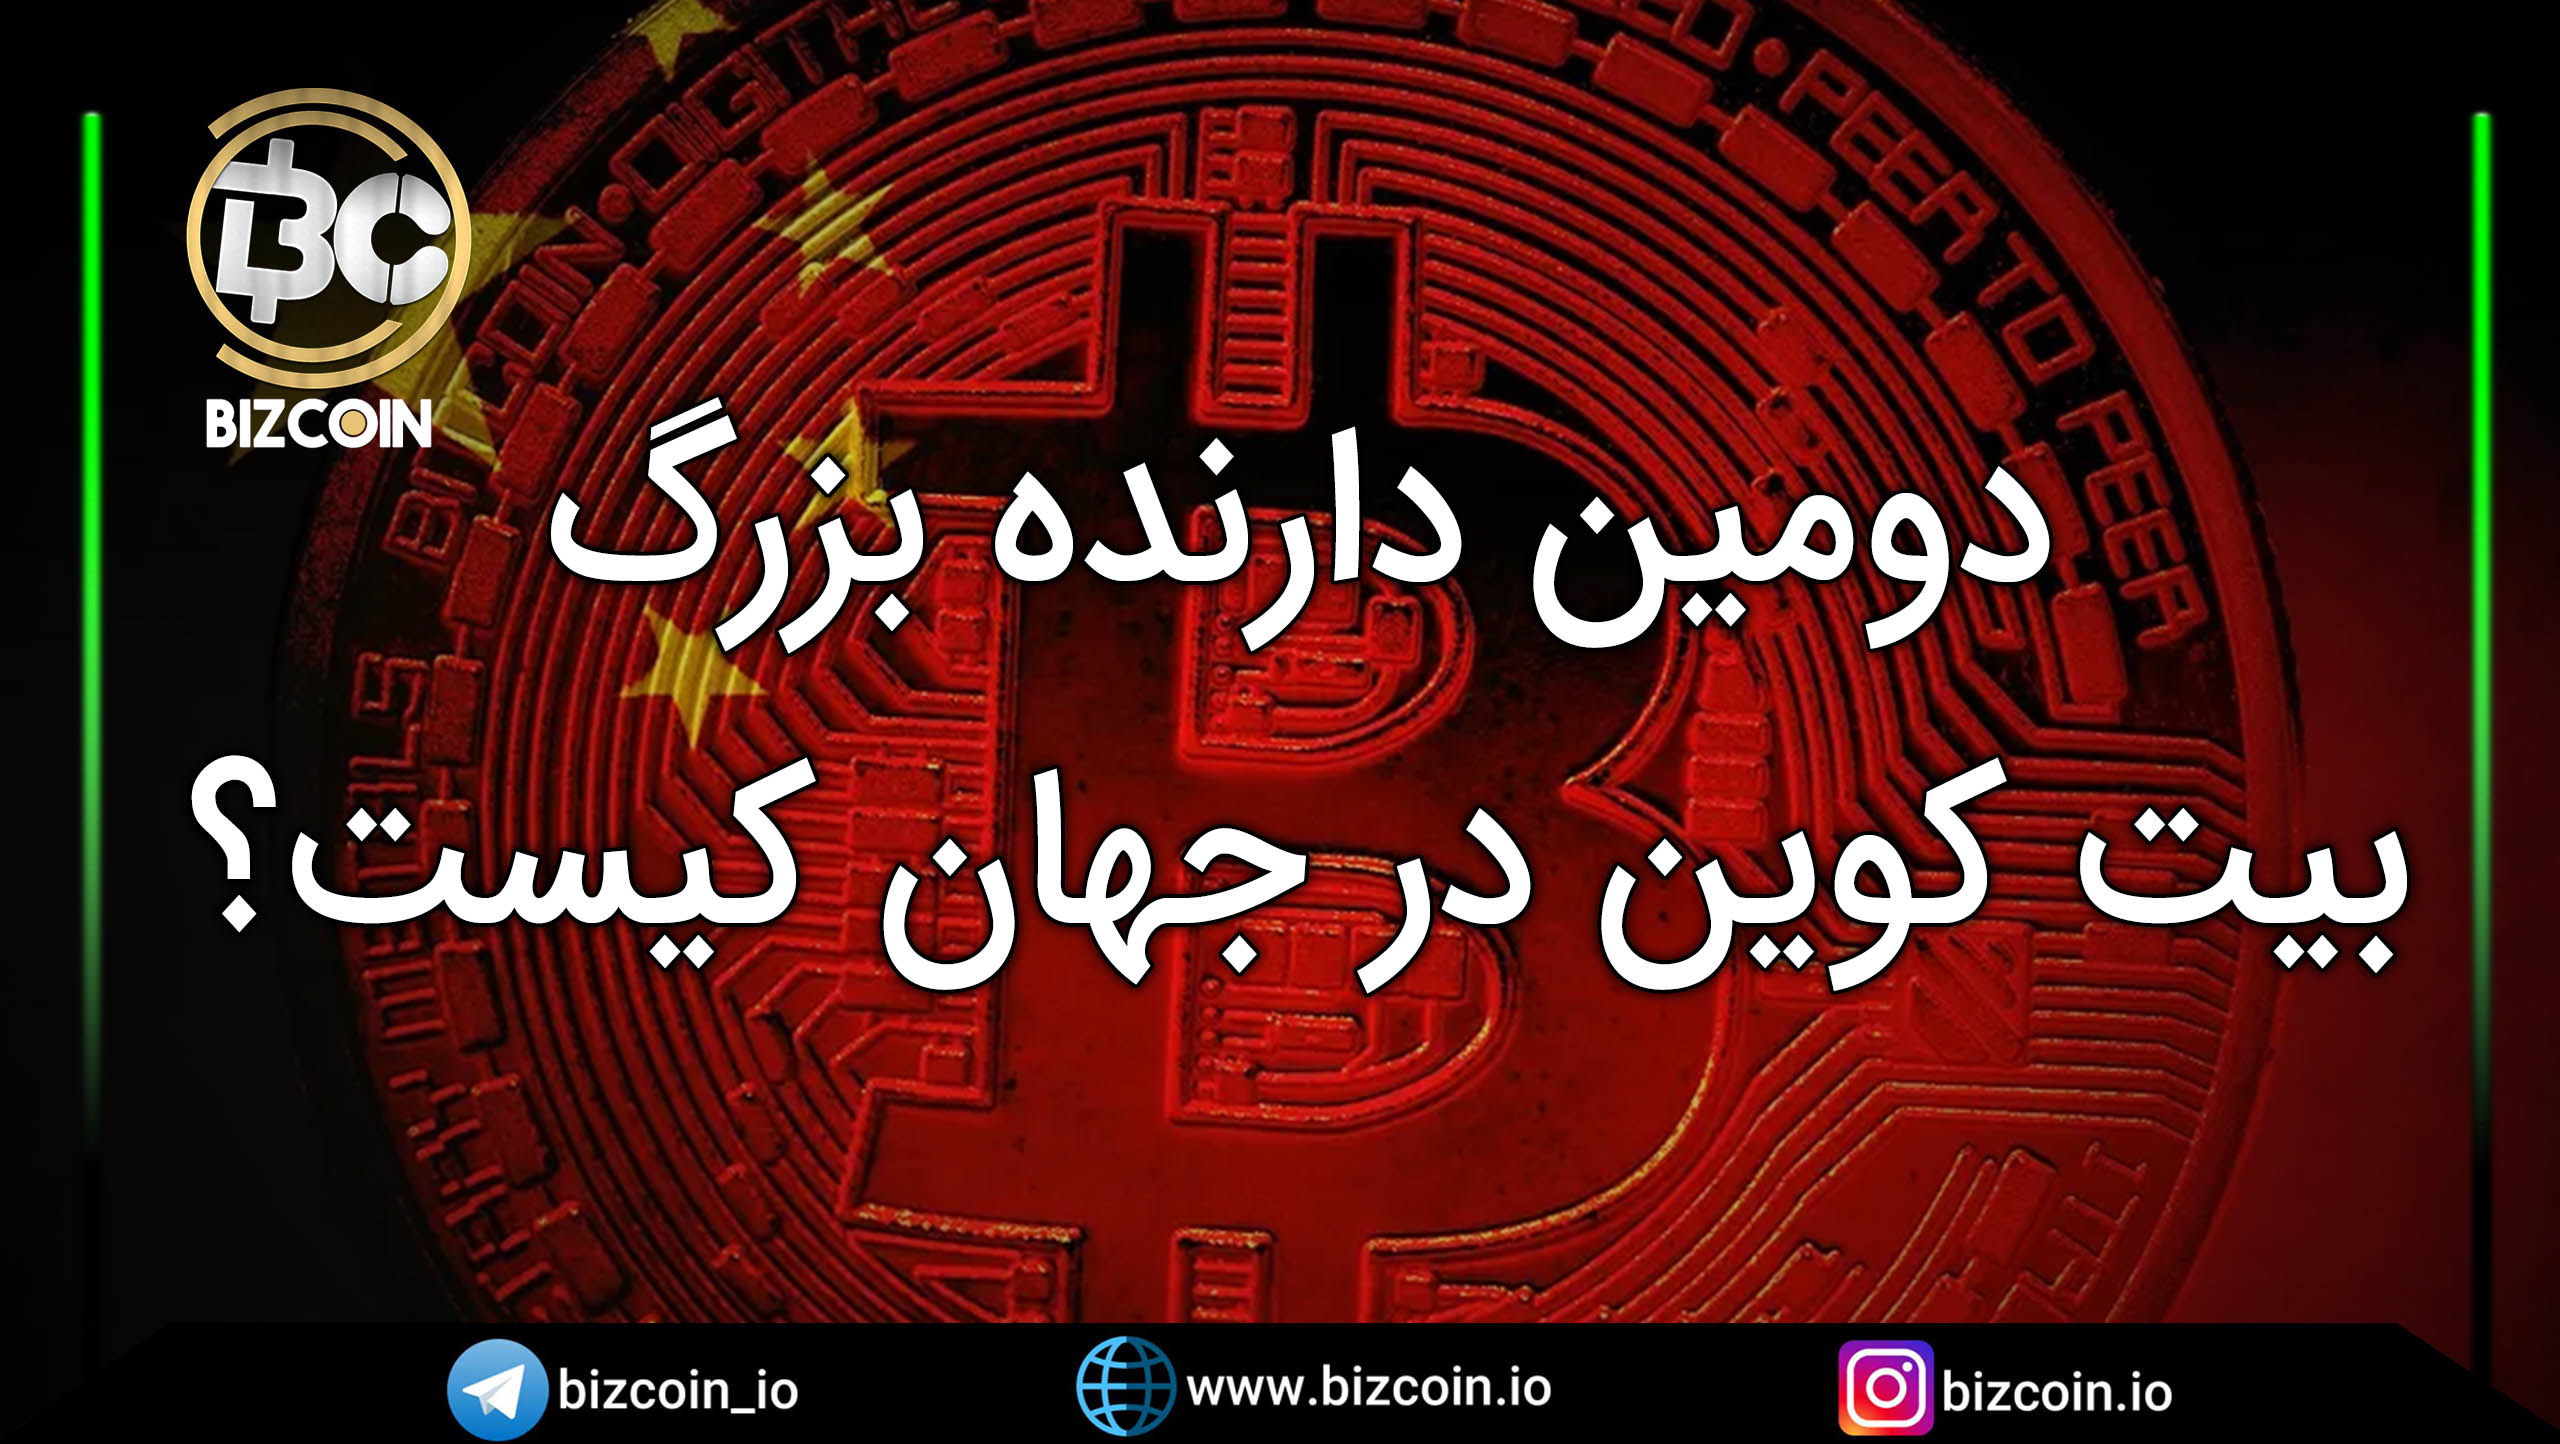 Who is the second largest holder of Bitcoin in the world دومین دارنده بزرگ بیت کوین در جهان کیست؟